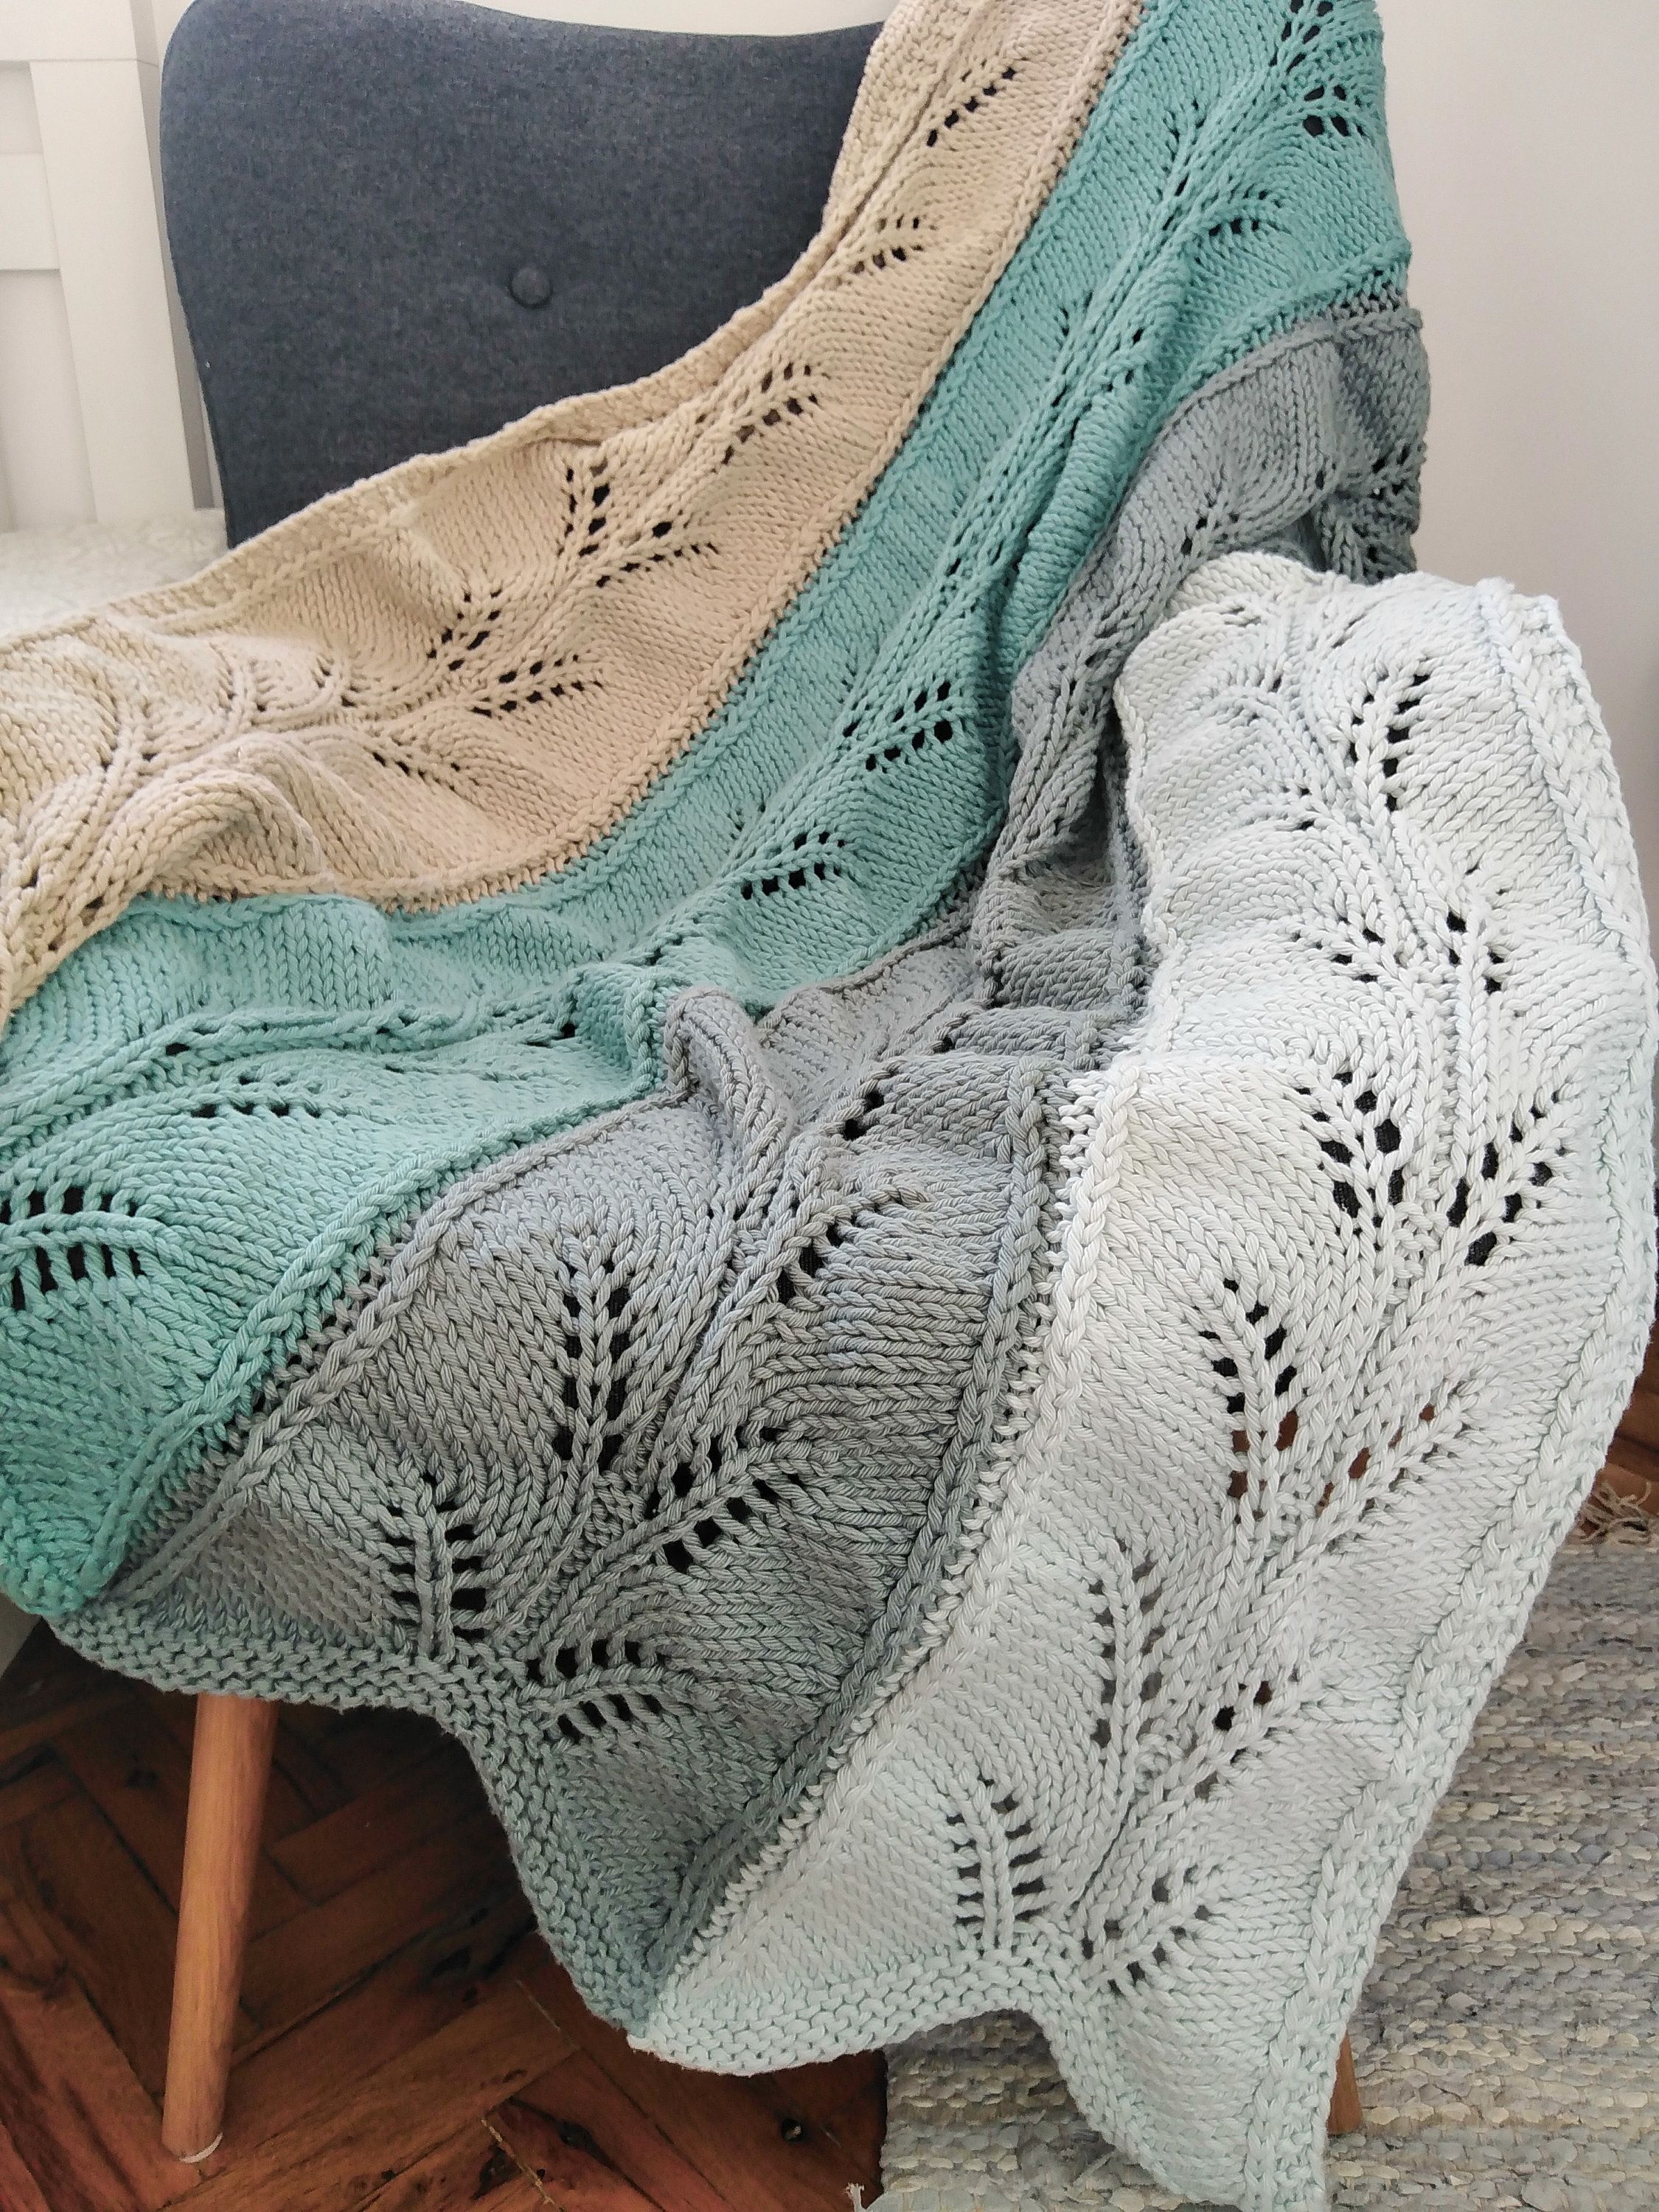 Multicolored knitted throw blanket for armchairs - single ...